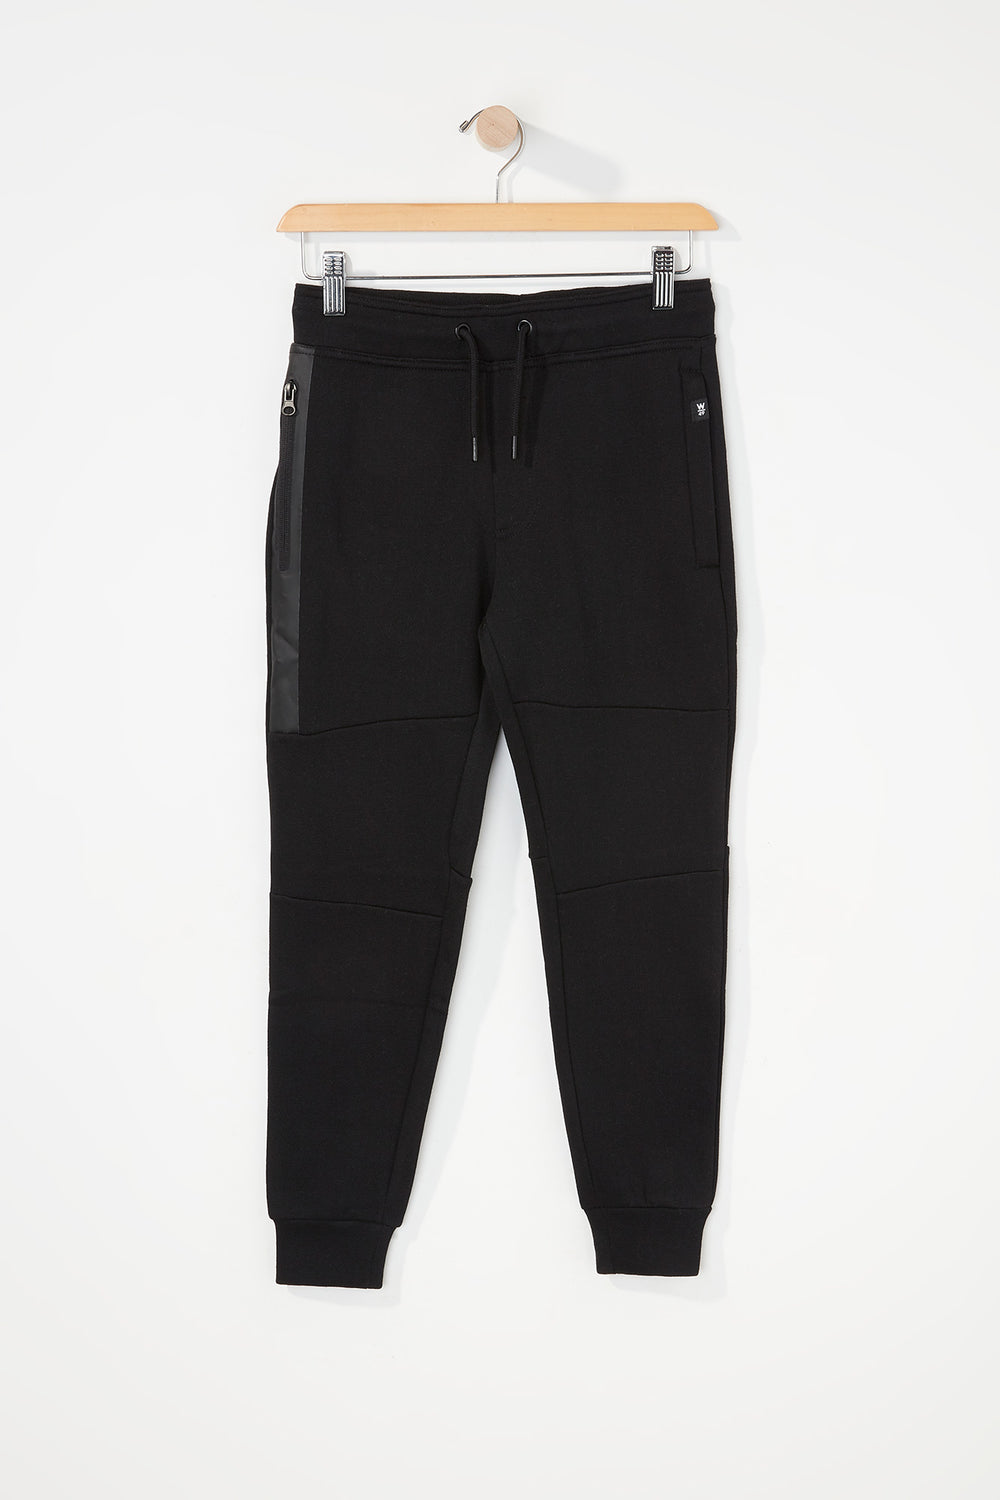 West49 Boys Zip Jogger Black